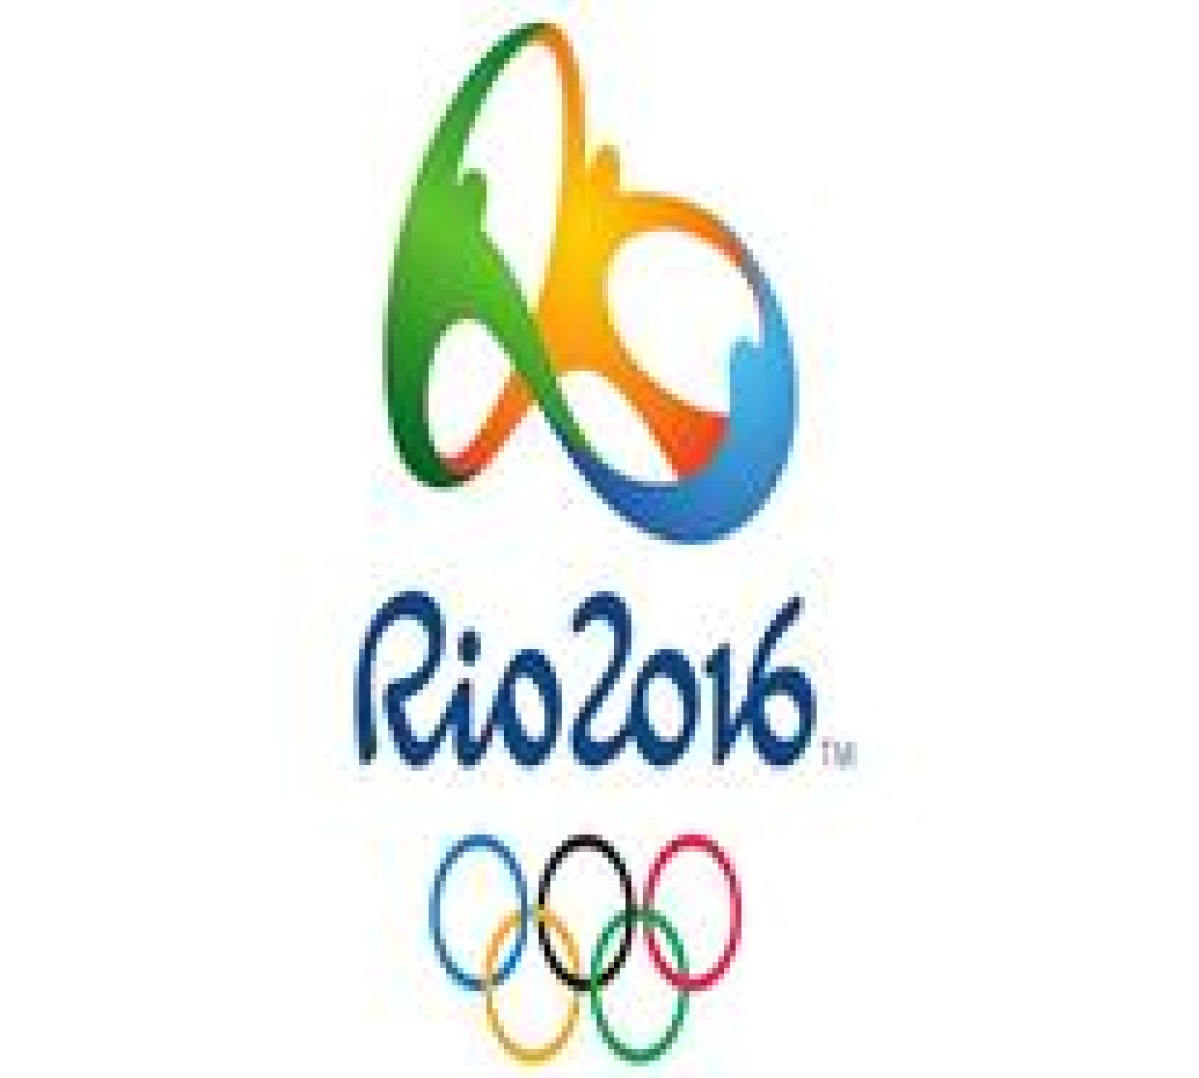 Indian boxers running risk of being barred from Olympics